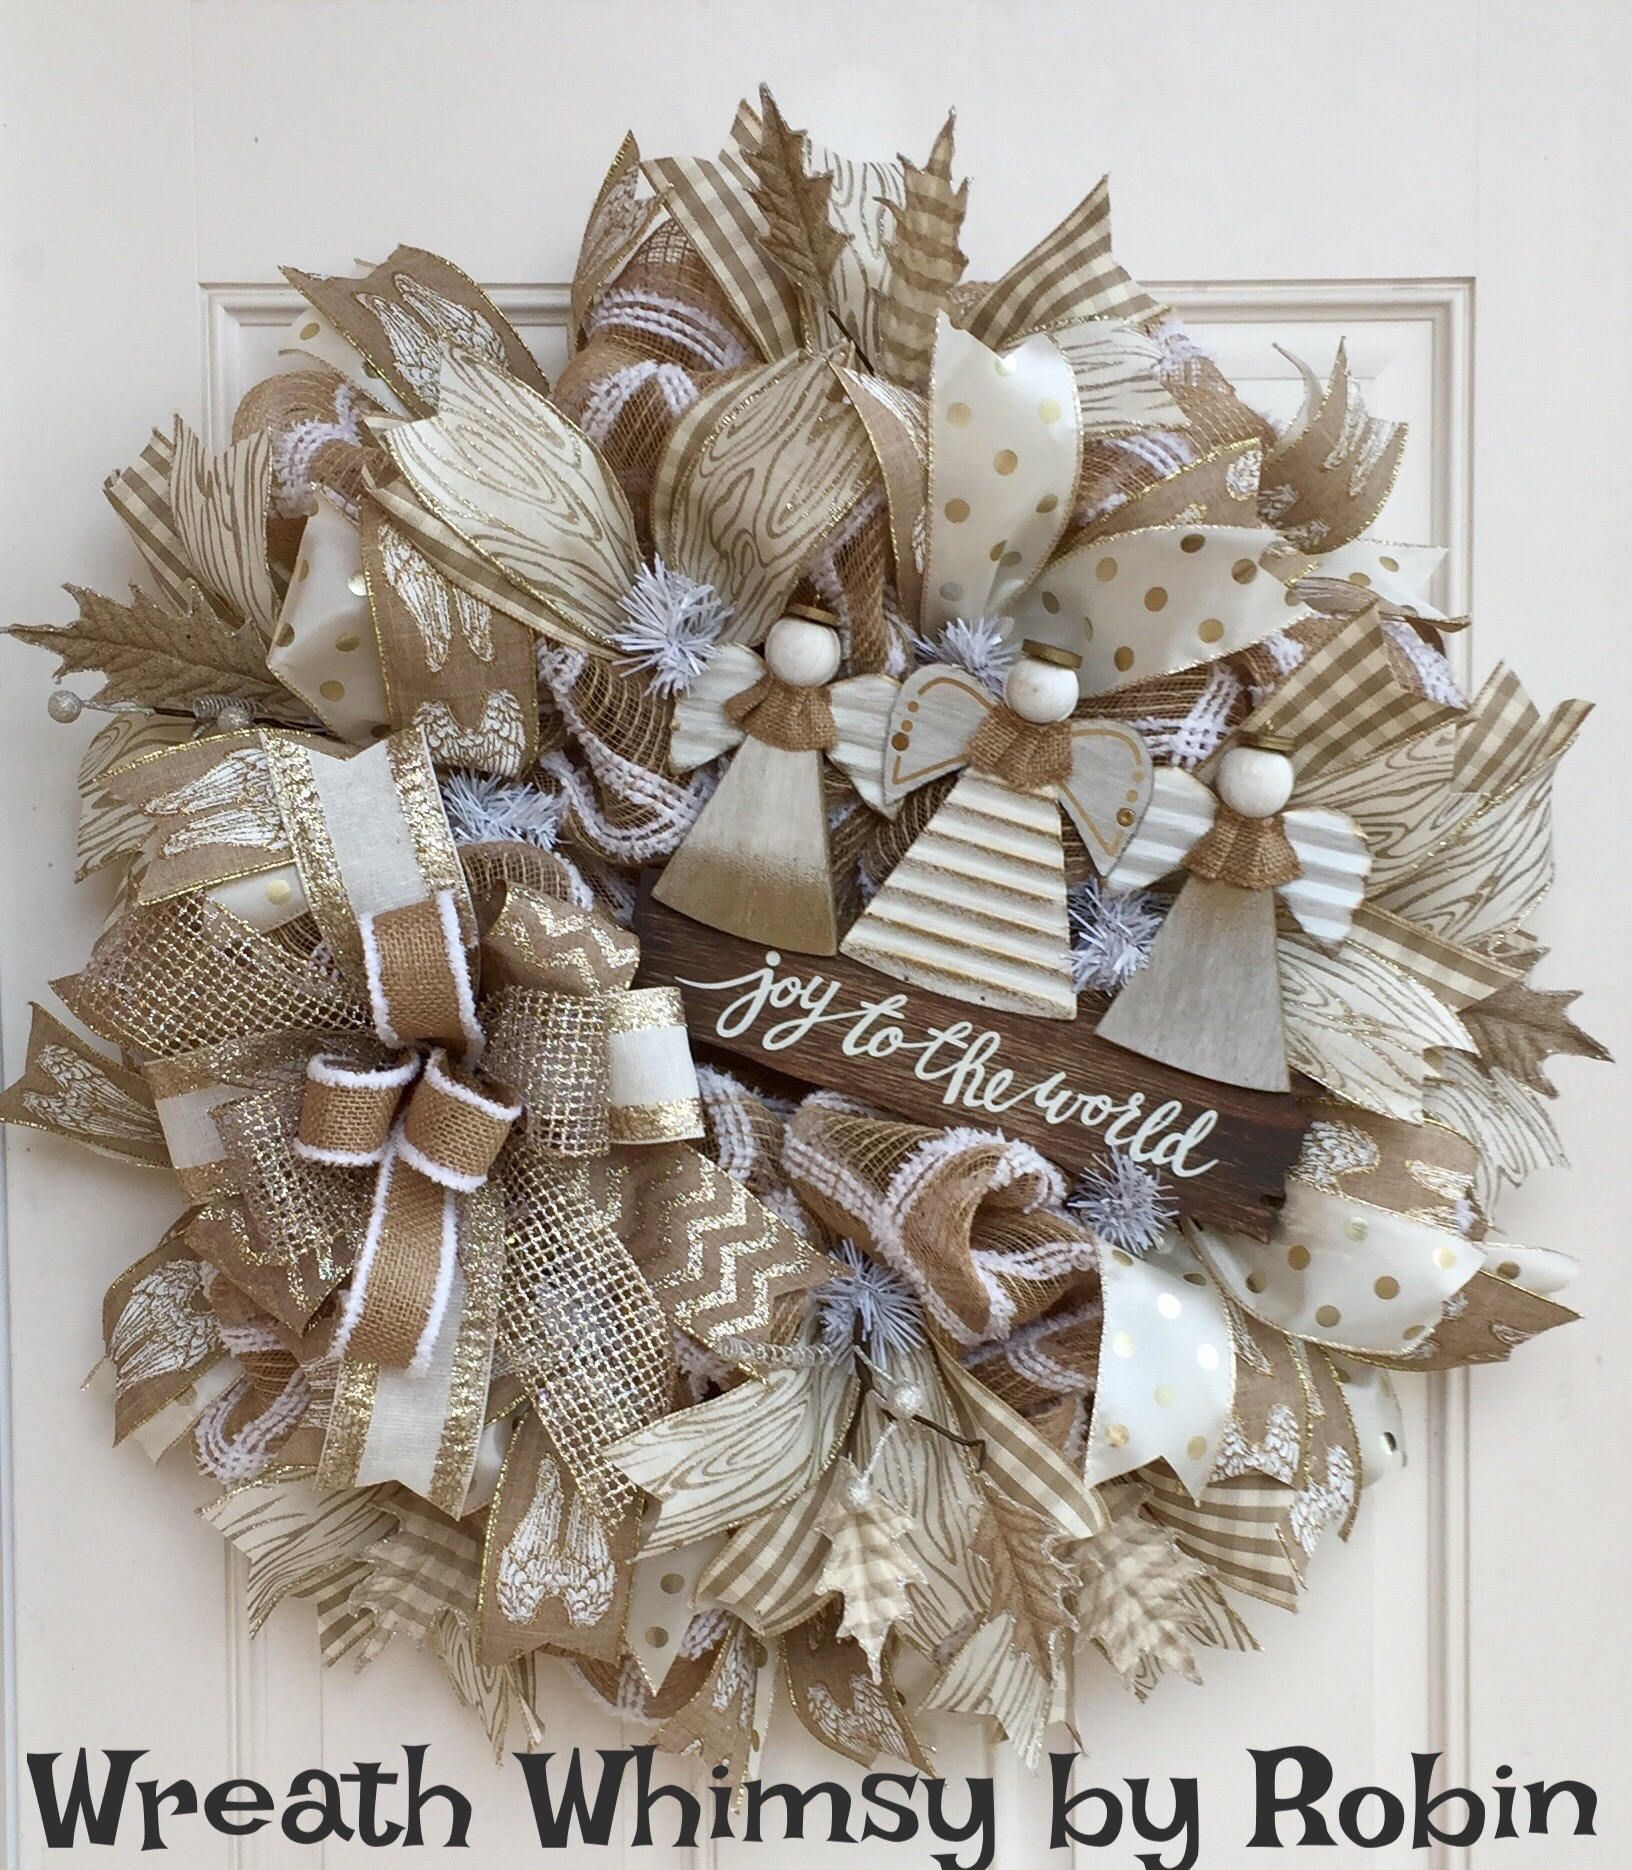 Charmant Christmas Burlap Mesh Wreath With Angel Sign In Cream, White, Tan U0026 Gold,